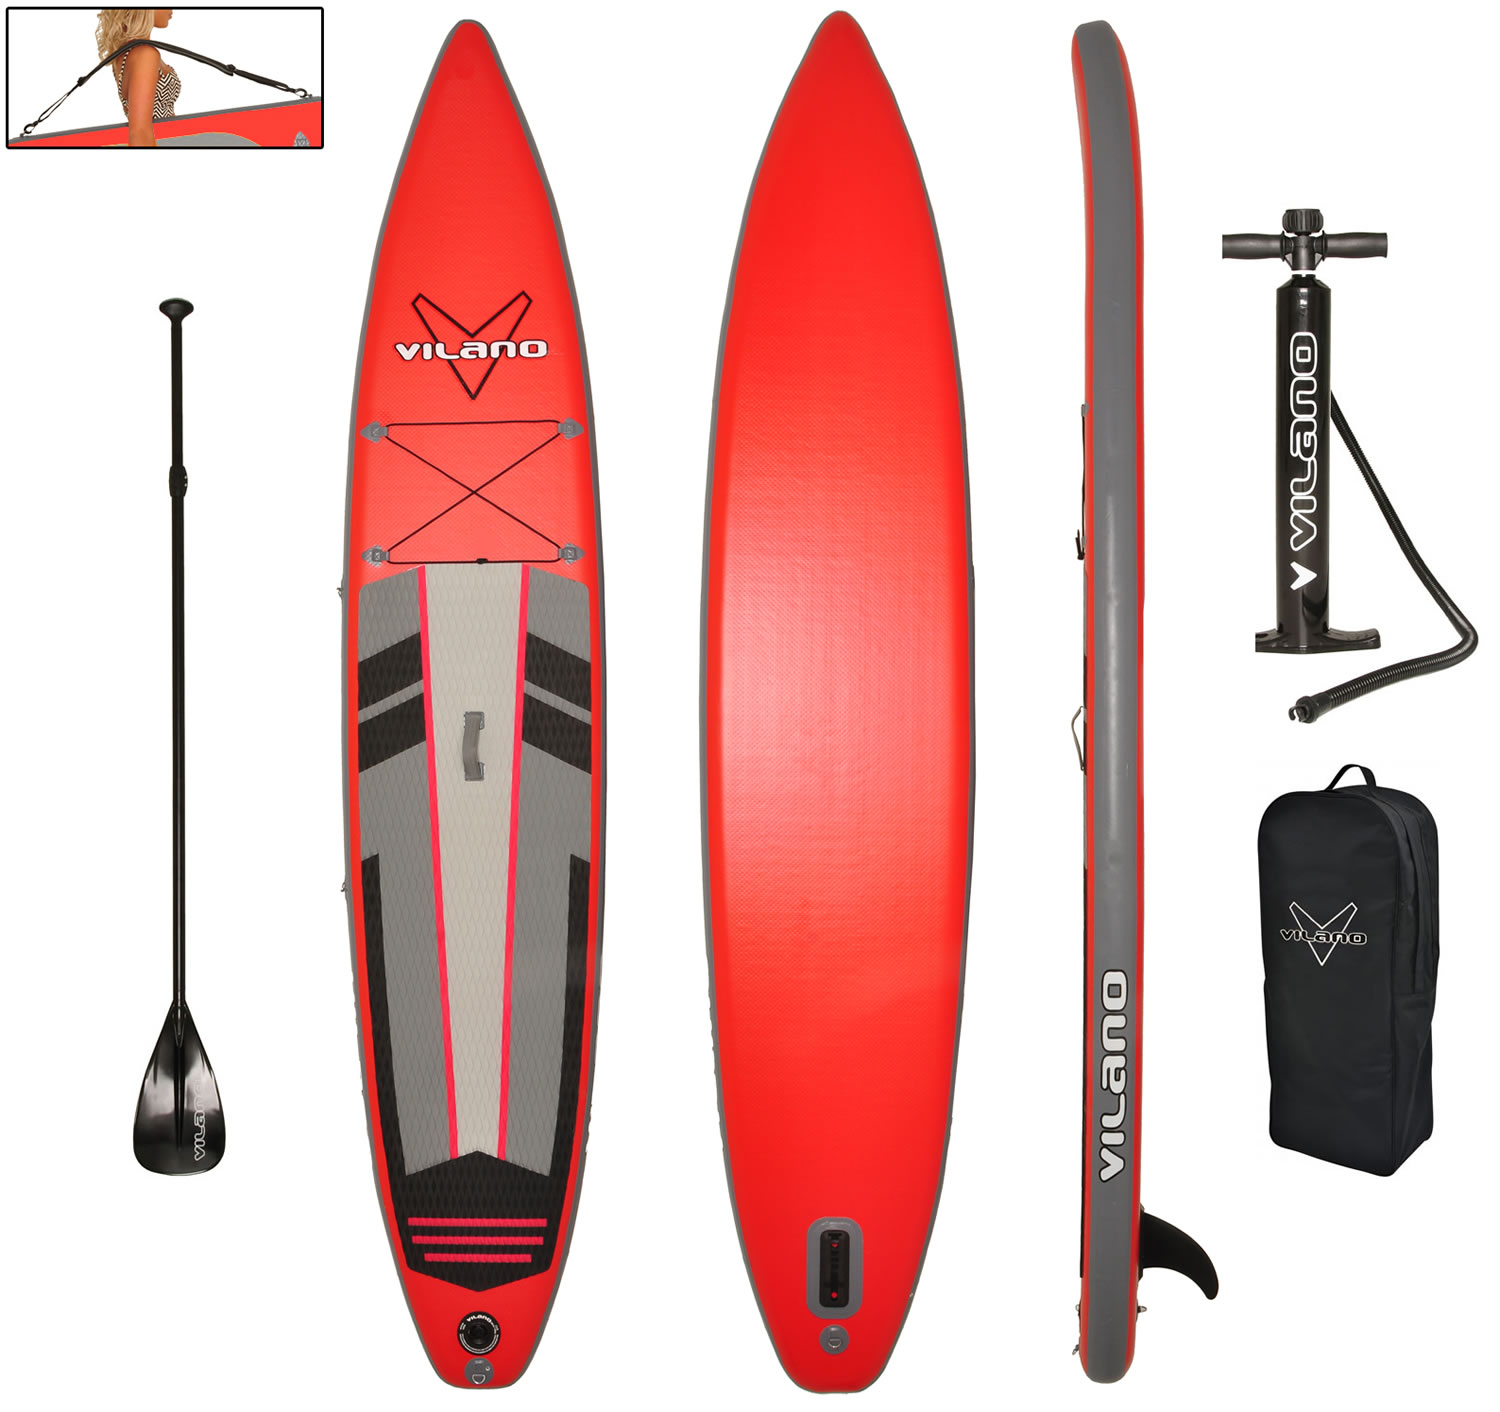 Vilano 12' Inflatable Touring / Race SUP Stand Up Paddle ...